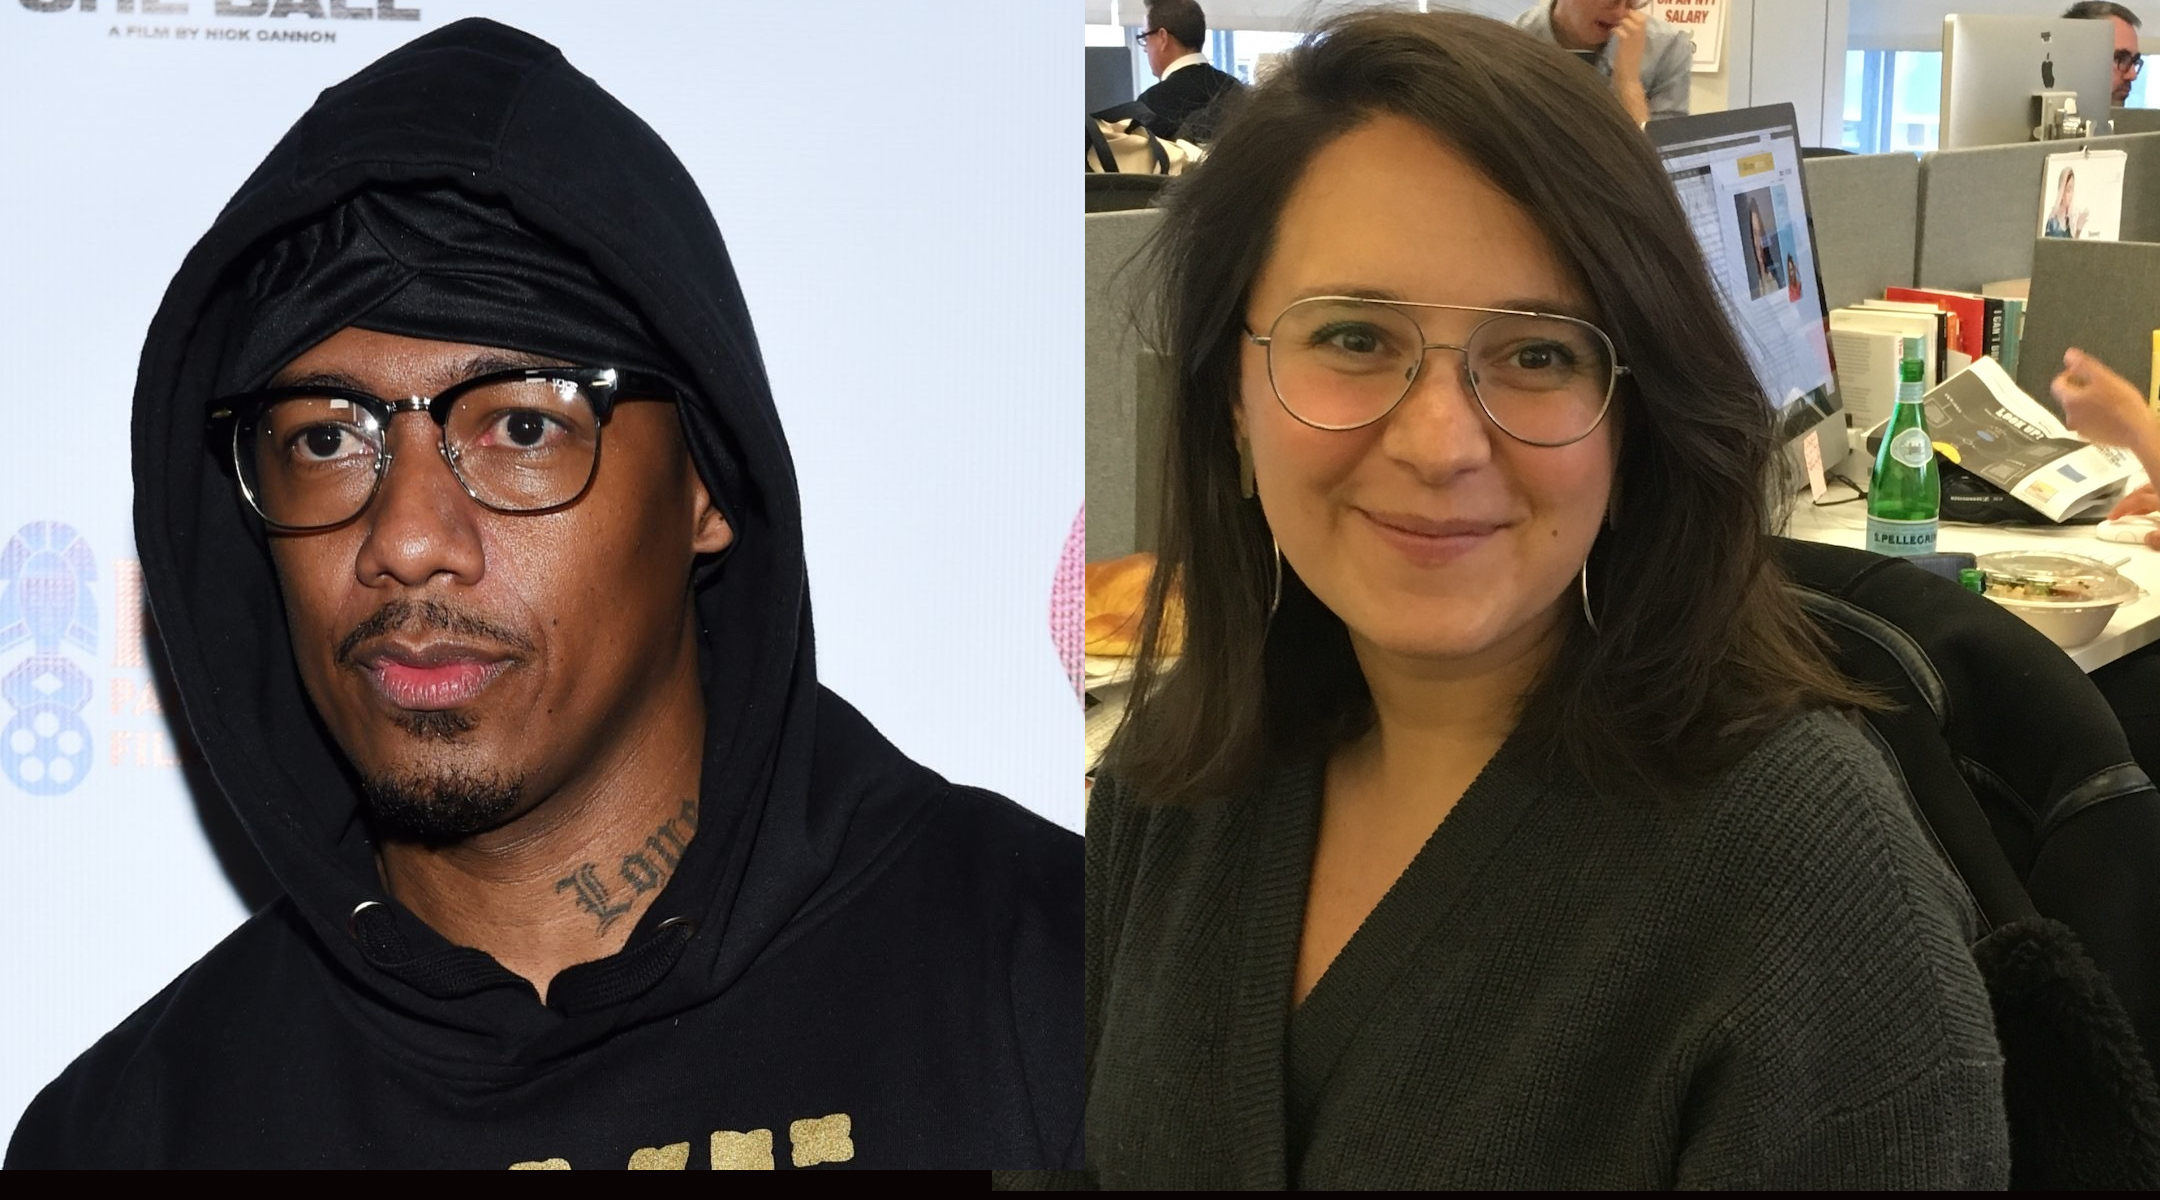 'Was she talking about me?' Nick Cannon ends July by reviewing Bari Weiss' 'How to...